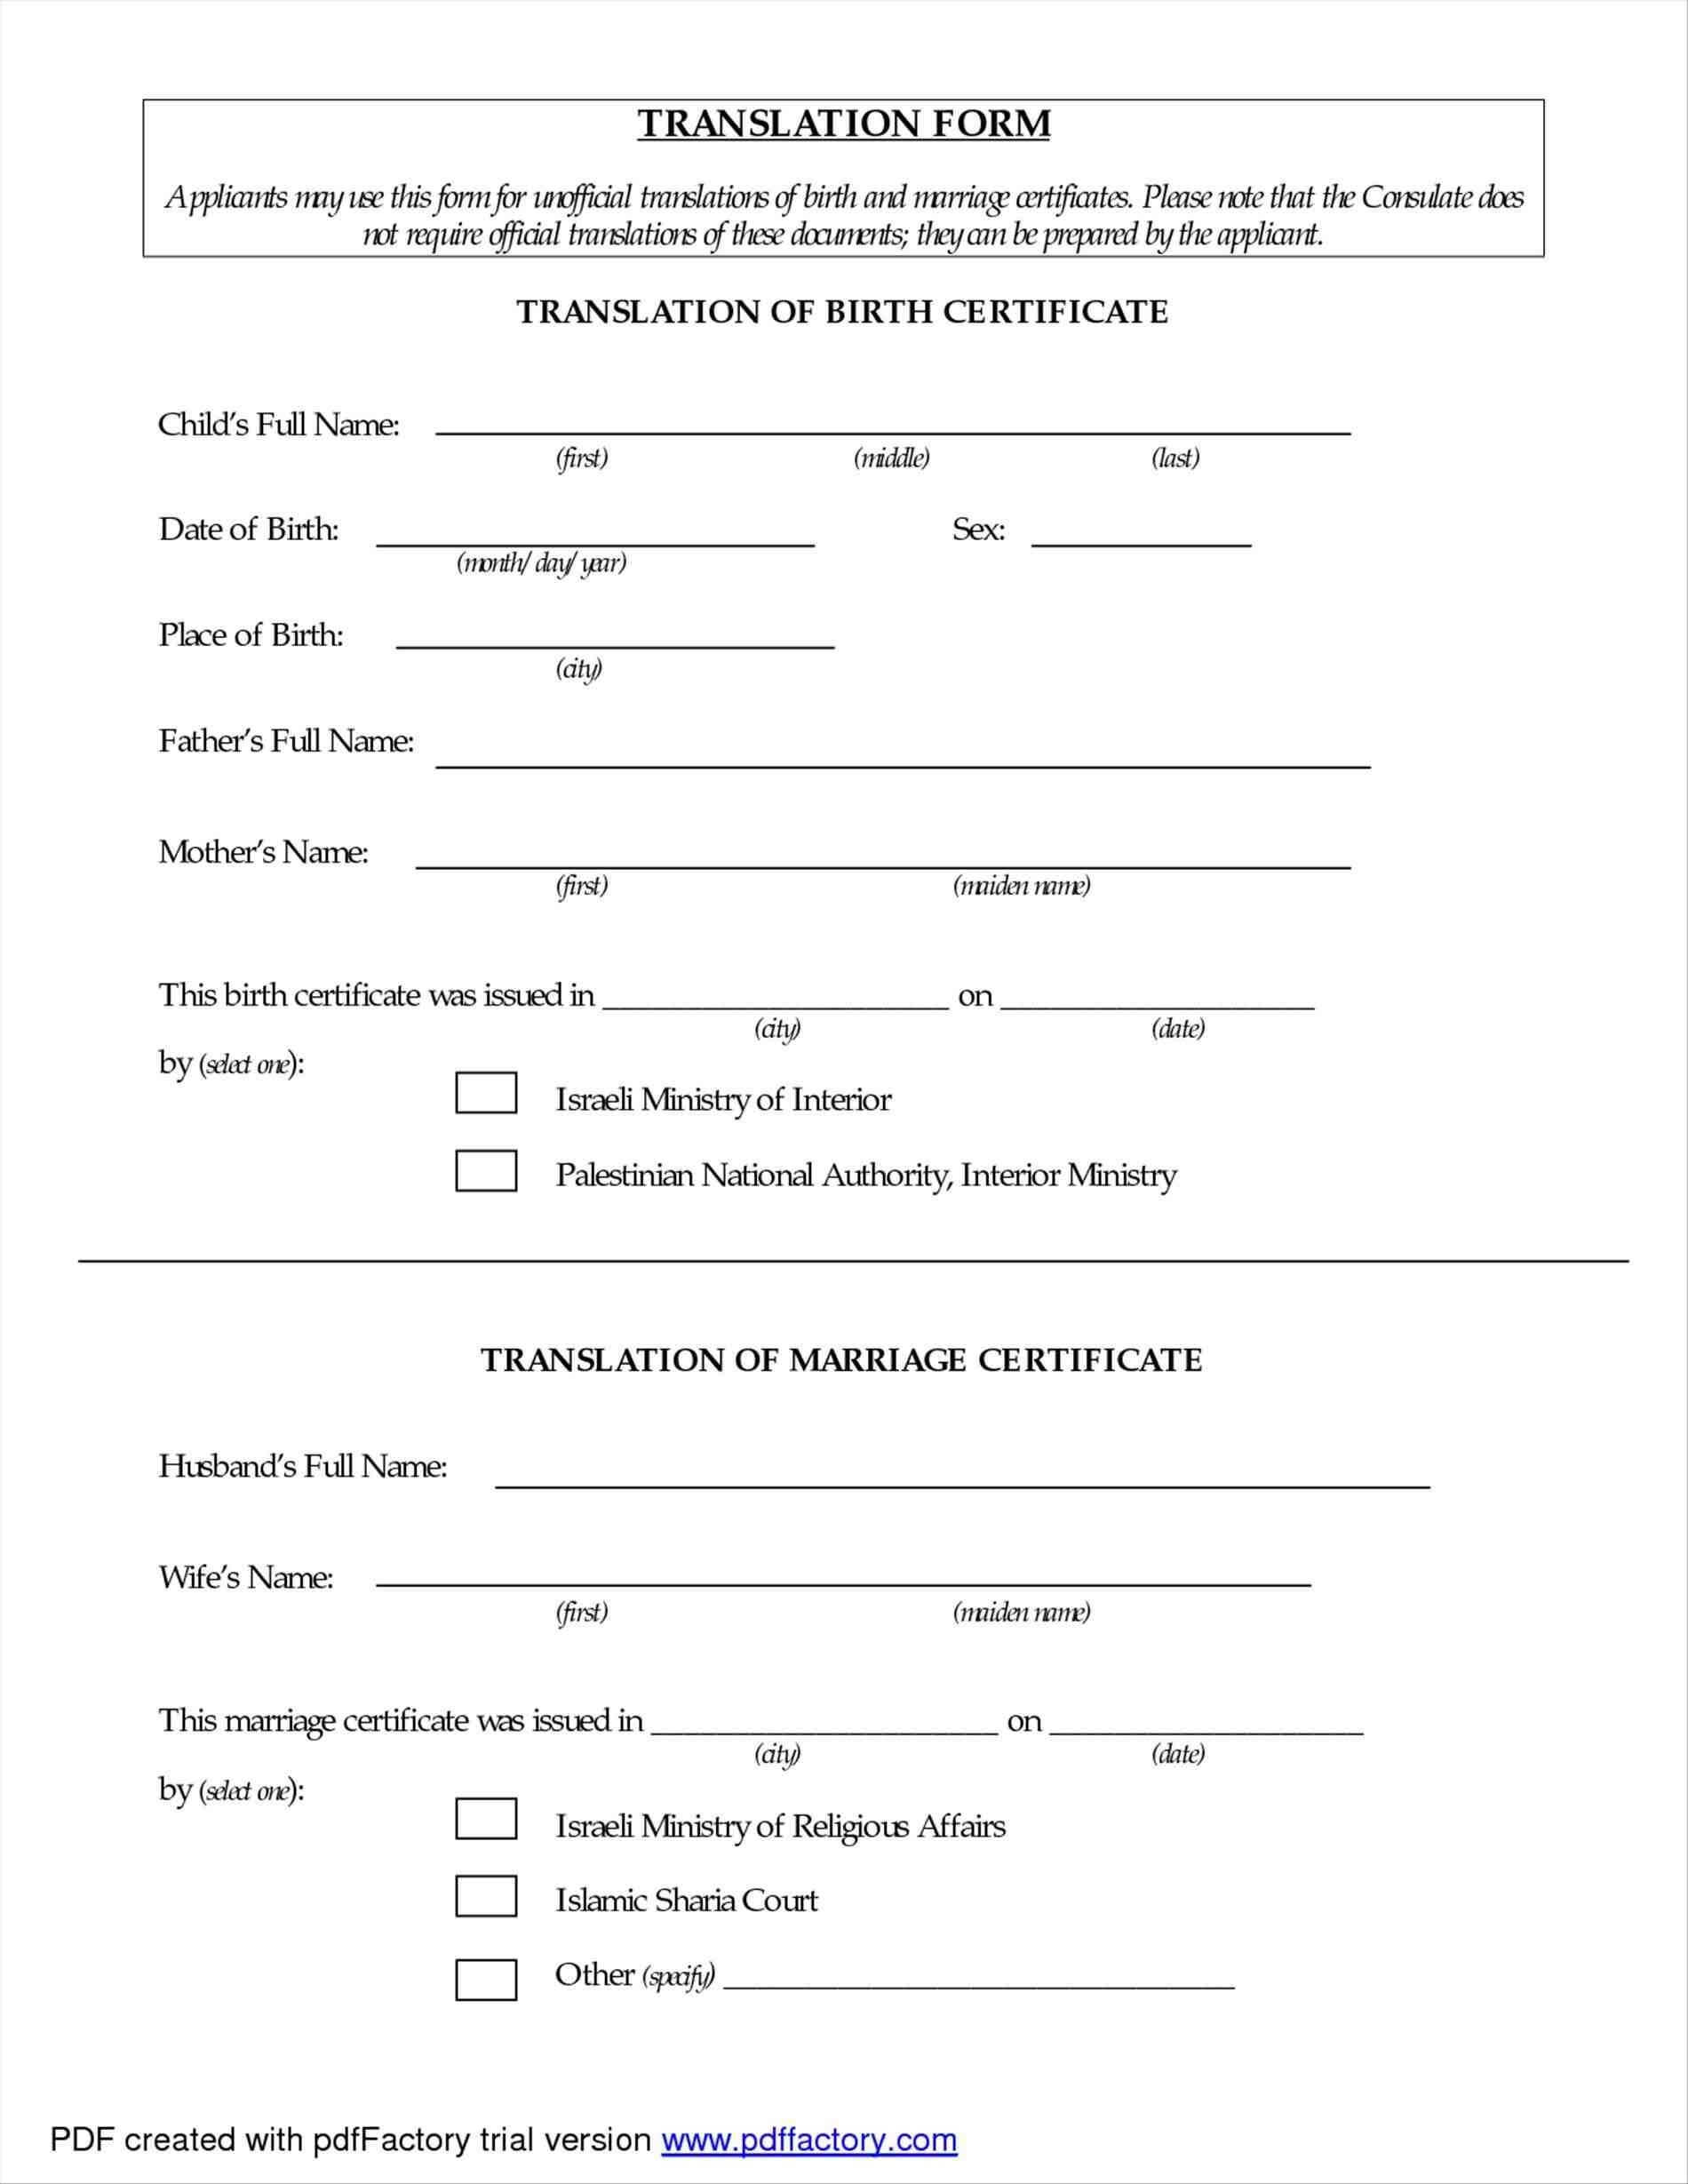 031 Certificate Of Marriage Template Certificate28129 Throughout Marriage Certificate Translation Template